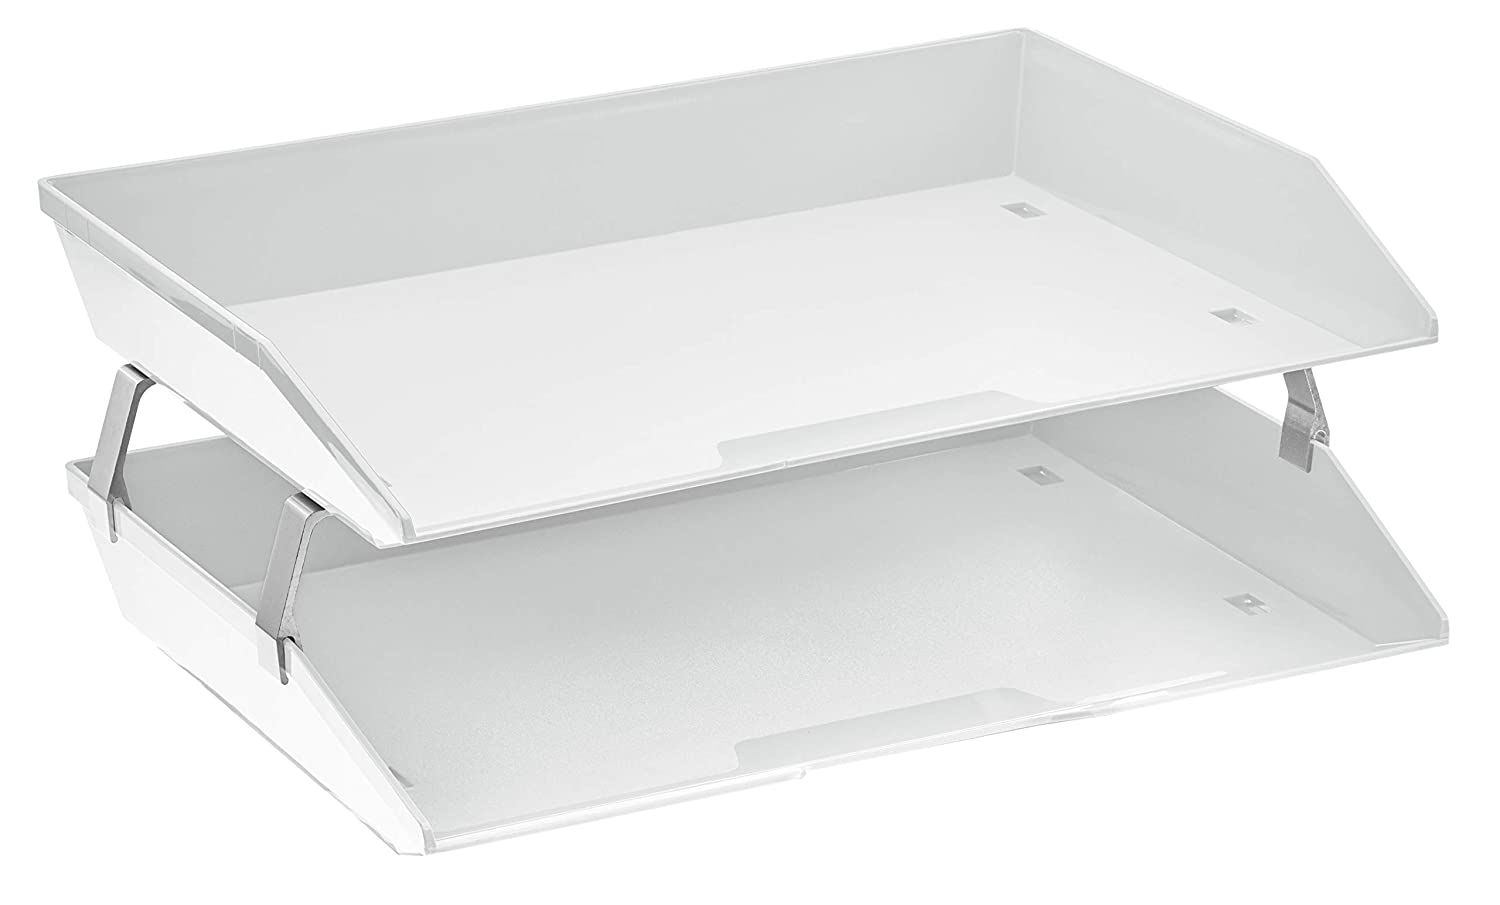 Acrimet Facility 2 Tier Letter Tray Plastic Desktop File Organizer (White Color)